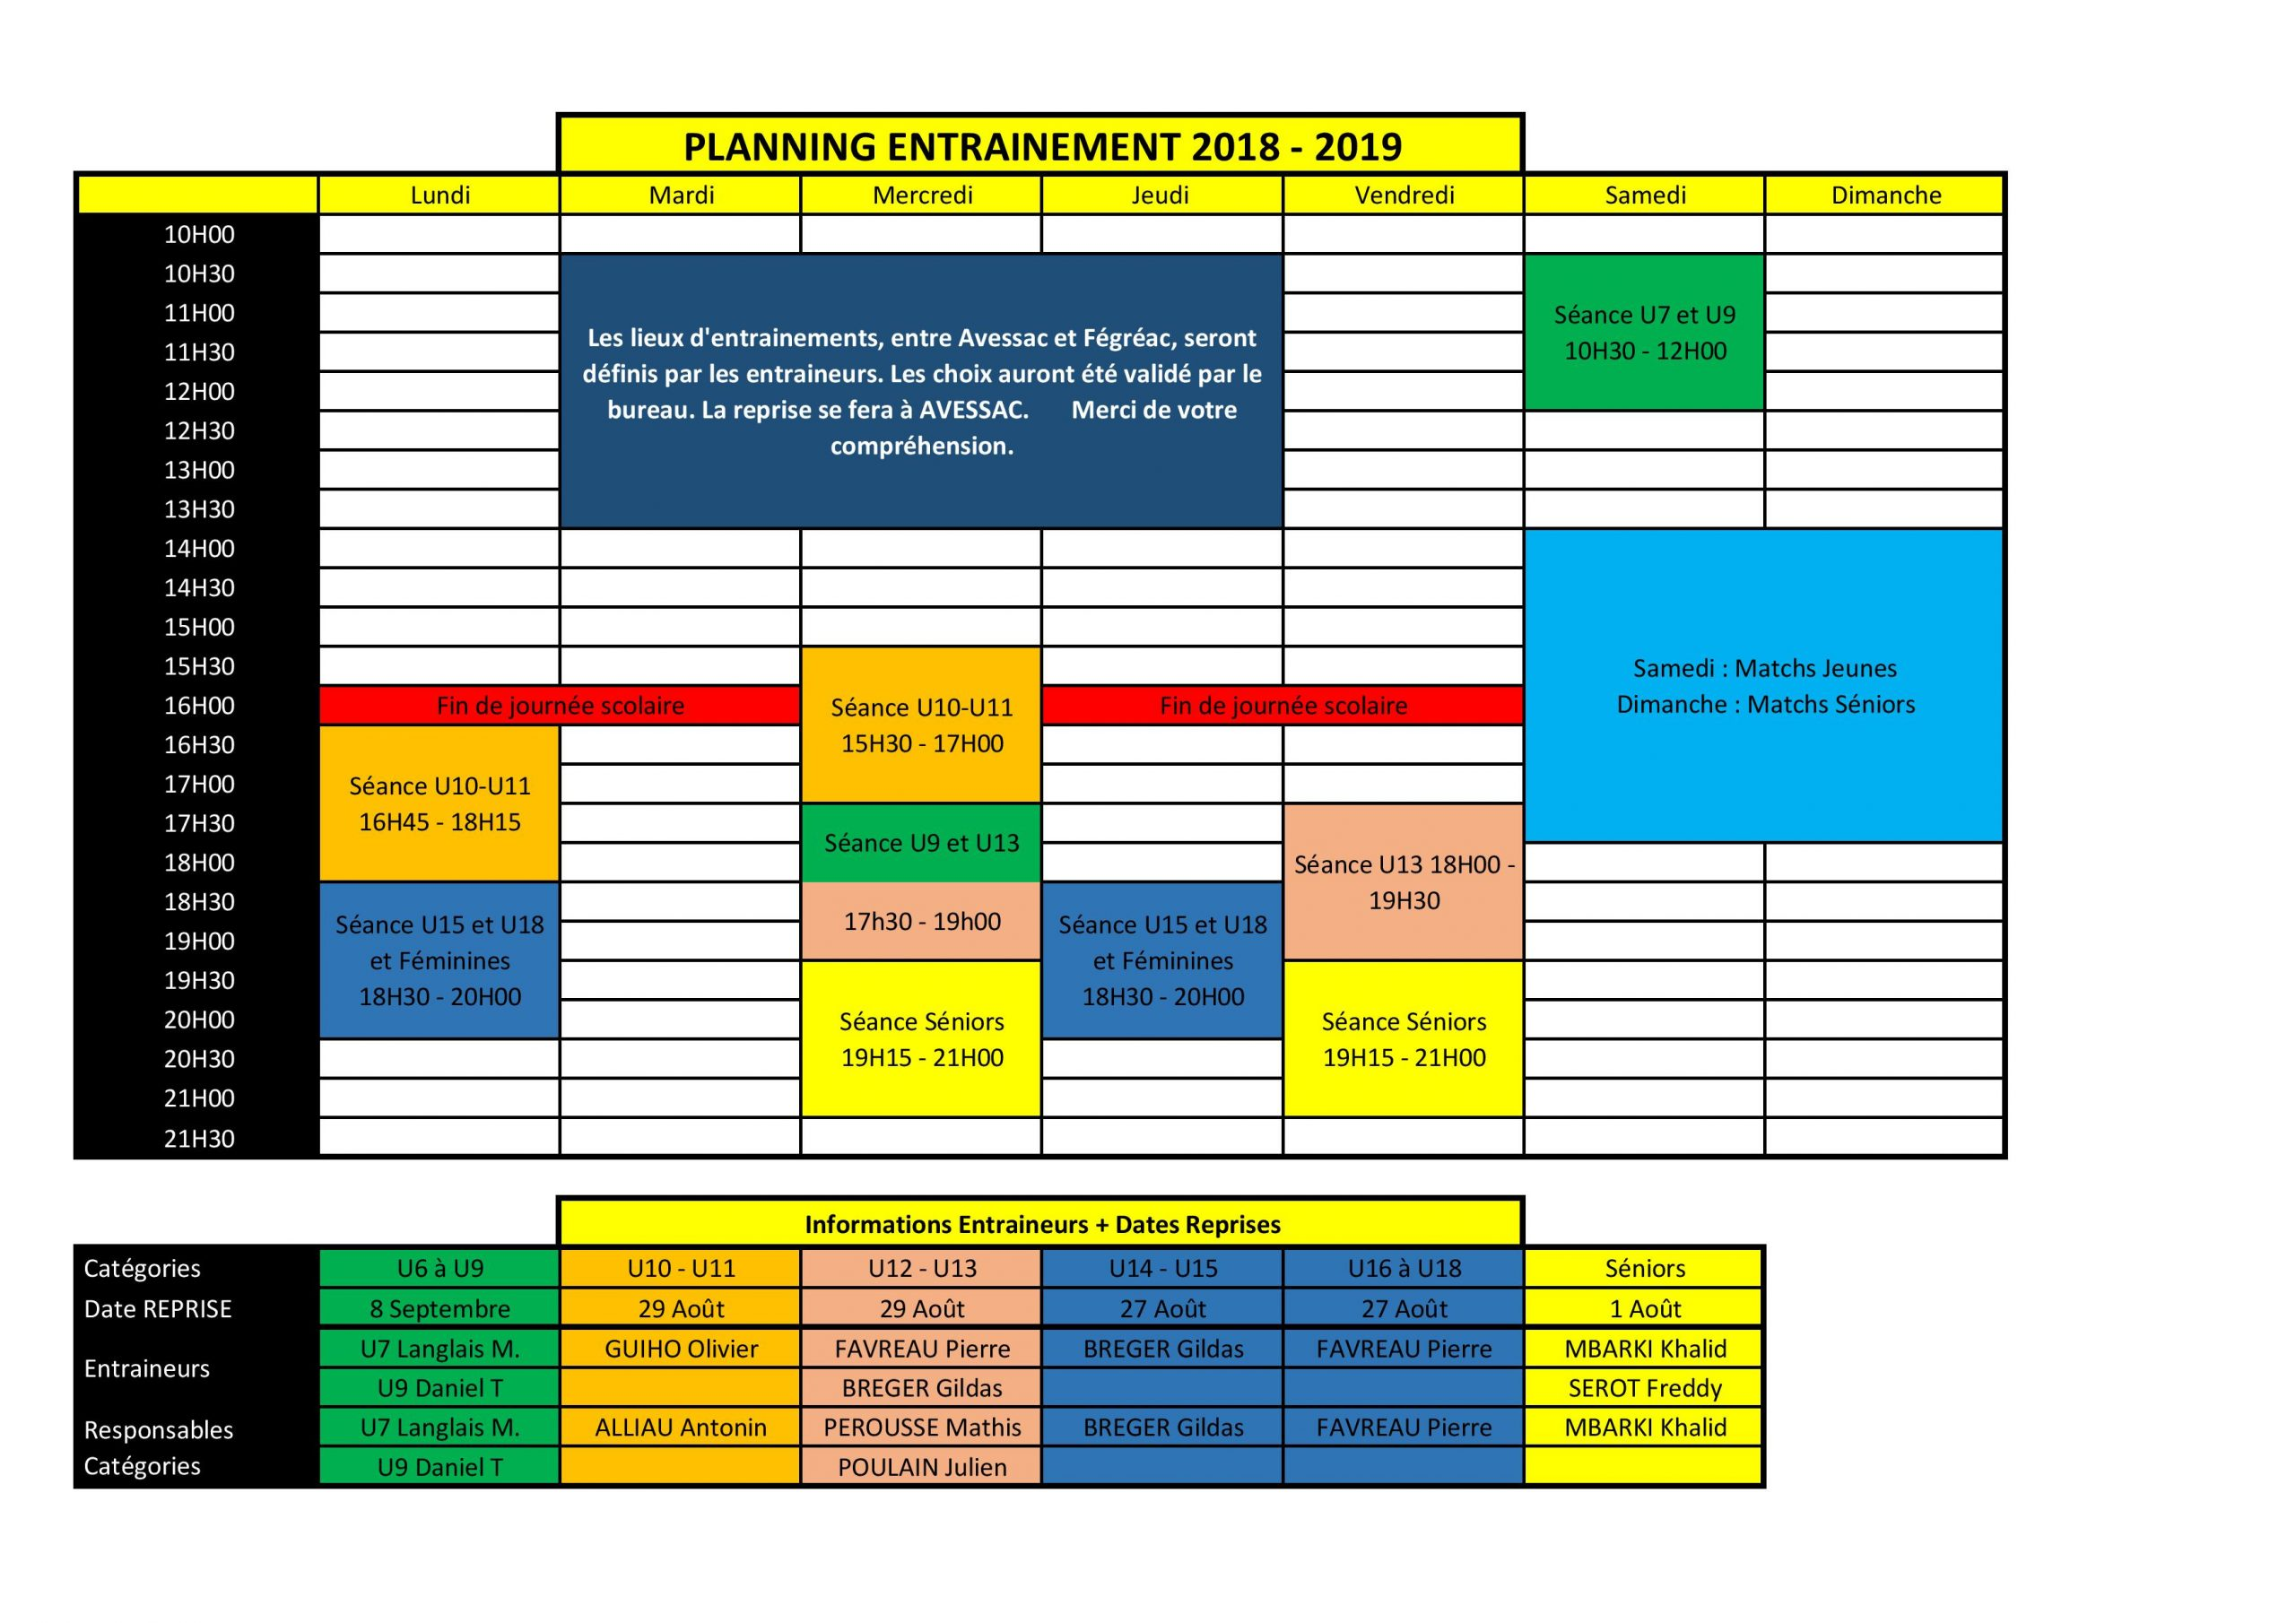 Planning Entrainement Annuel 2018-2019 - Club Football serapportantà Planning Annuel 2018